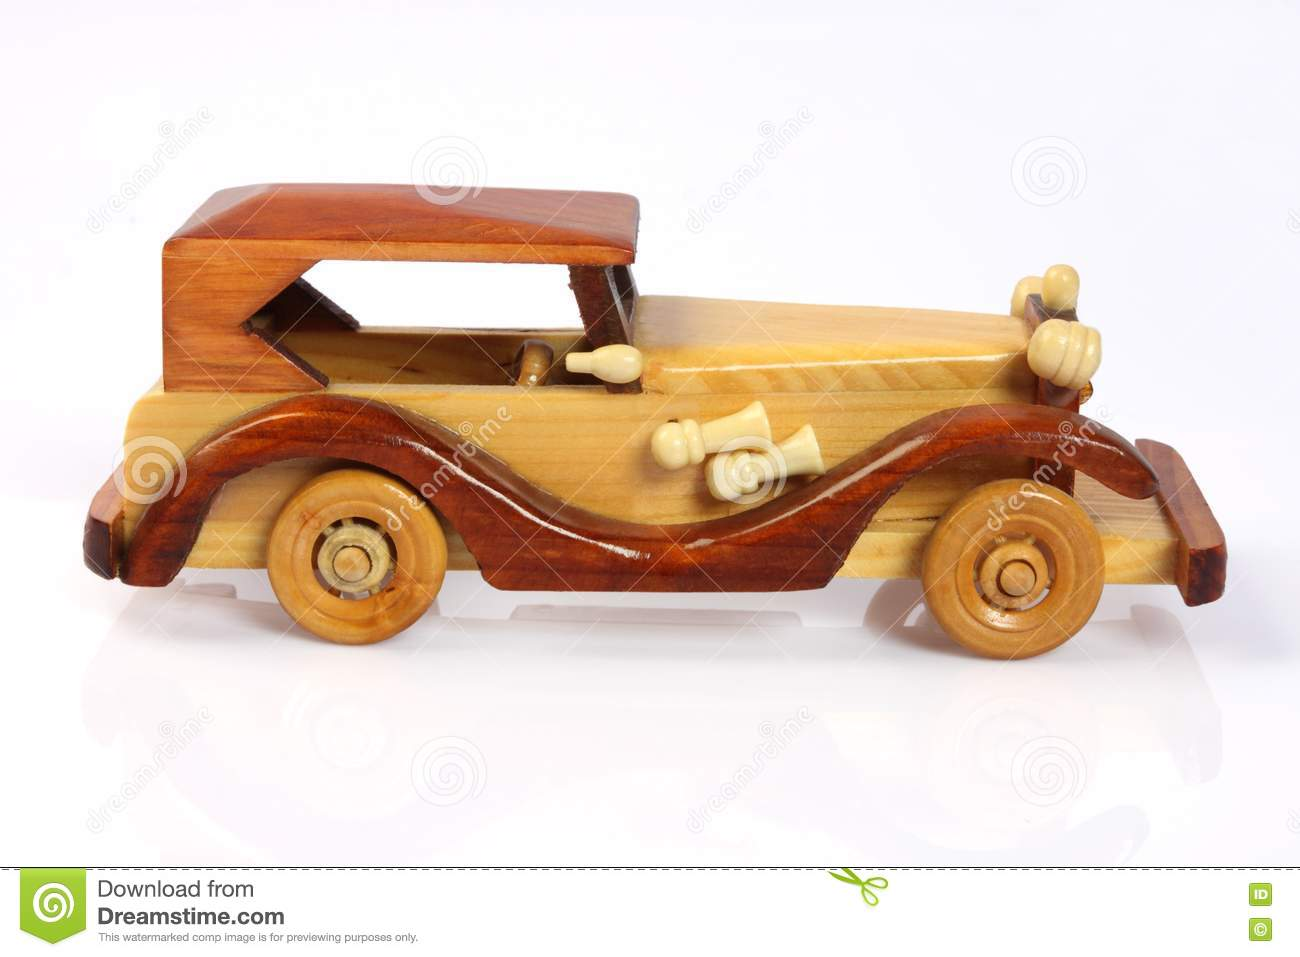 Handmade Wooden Toy Car Royalty Free Stock Photo - Image: 18543045